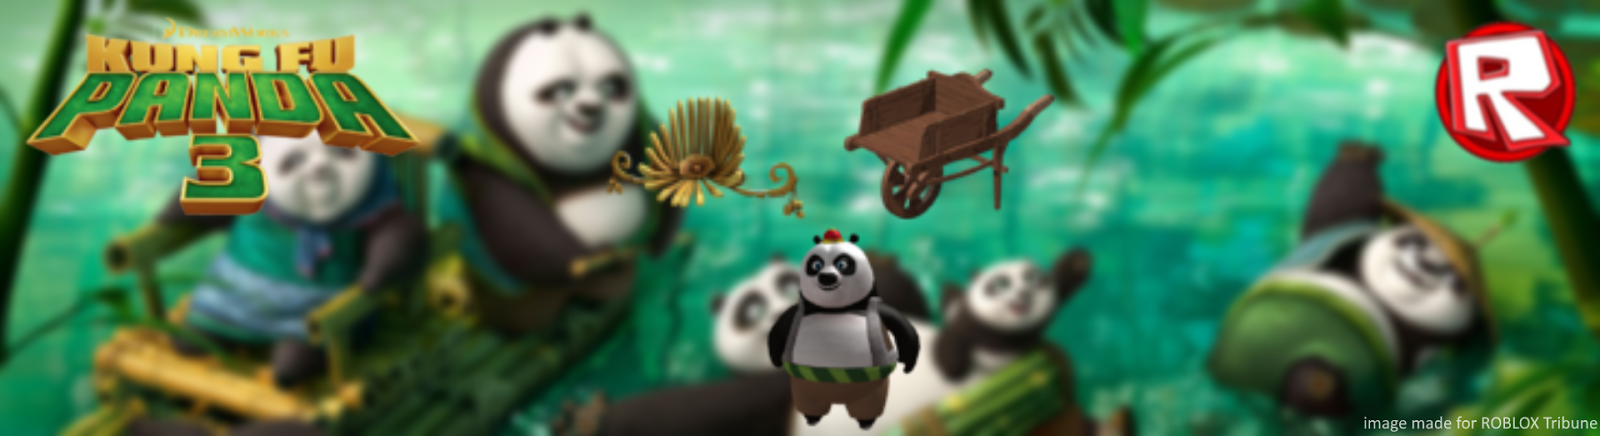 Kung Fu Panda Roblox Id - Kung Fu Panda Roblox Robux Free For Roblox